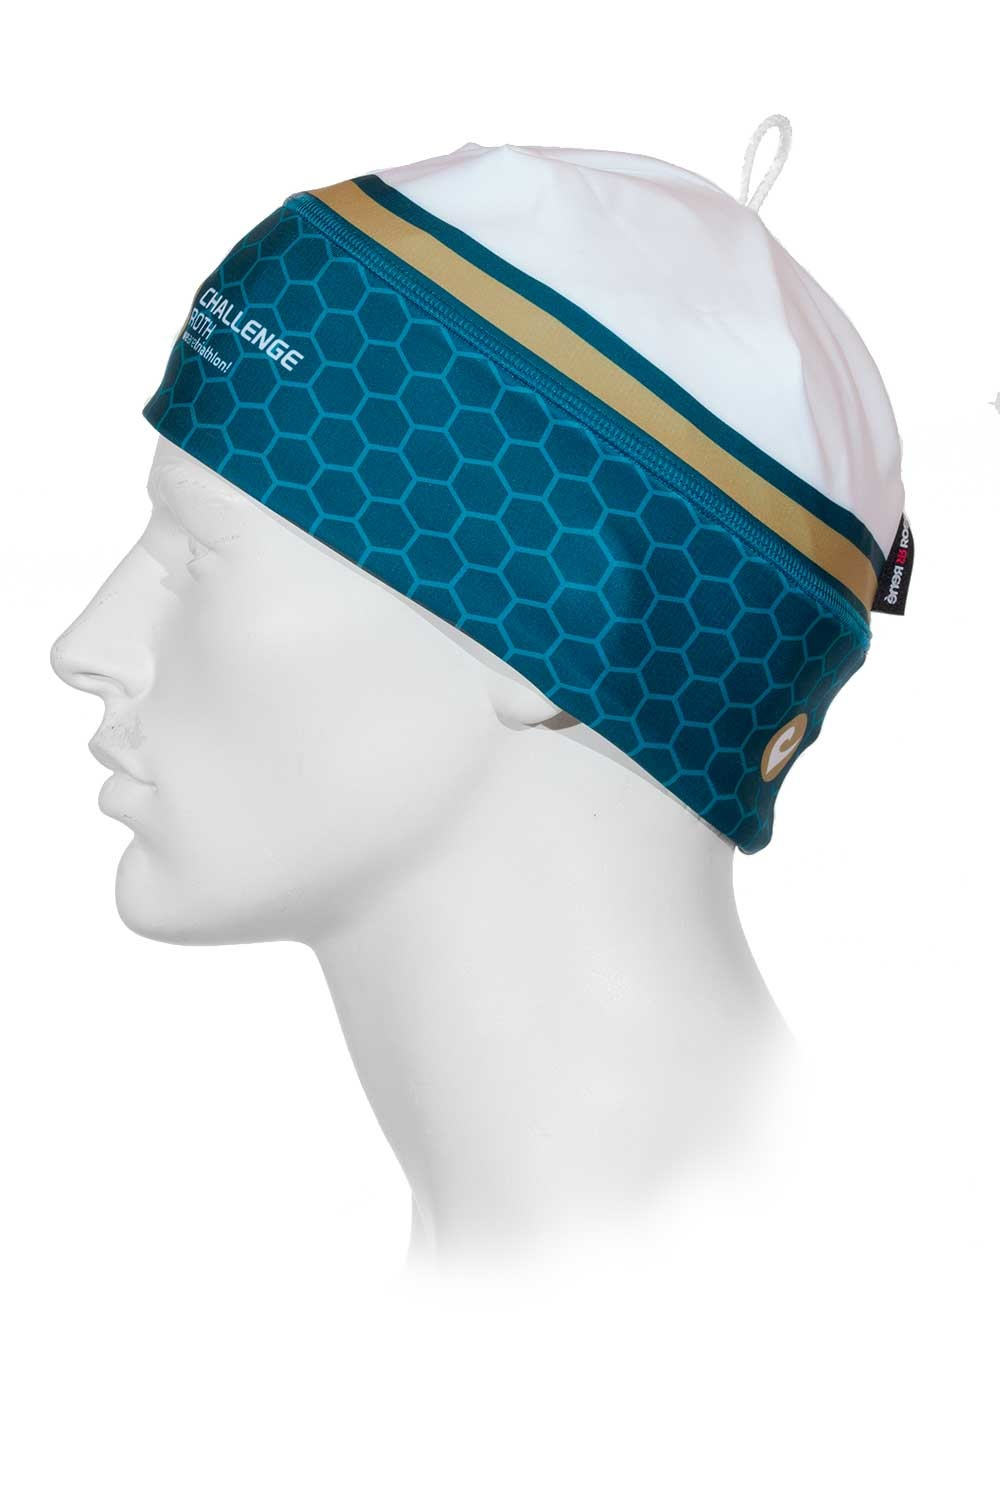 Thermo Beanie Championship Design-2